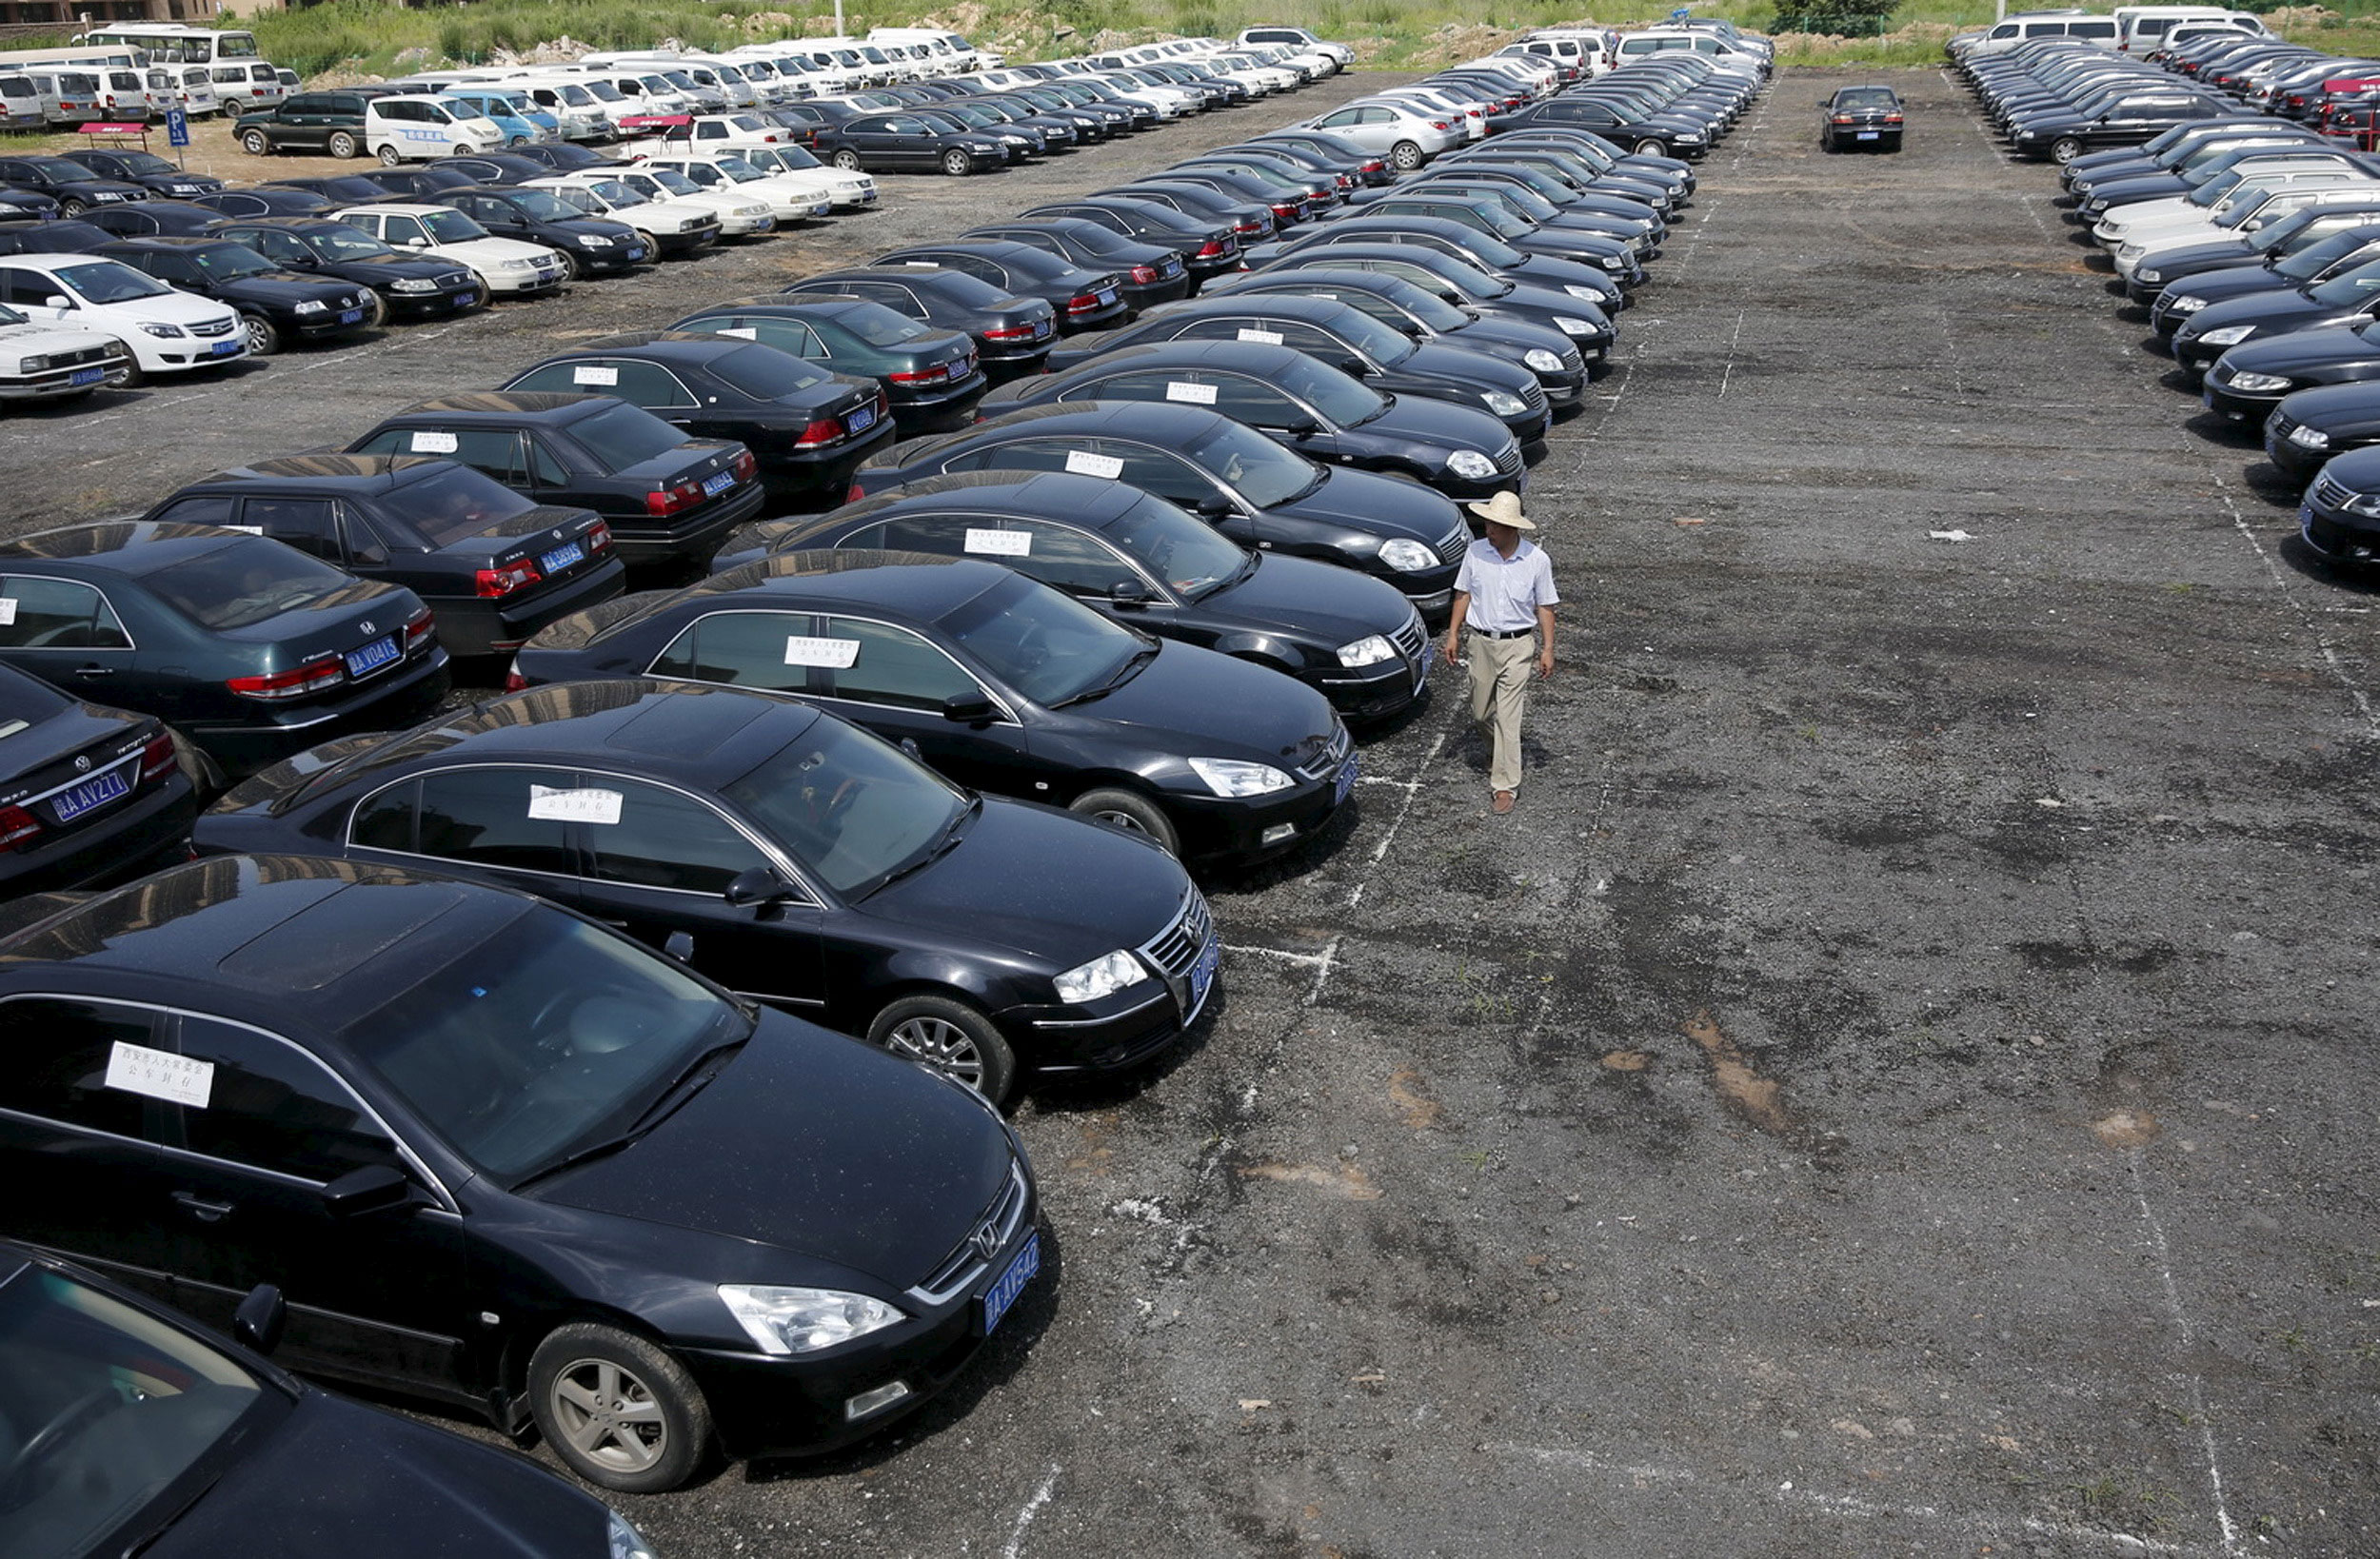 Domestic car sales growth accelerates with close to 18% rise in July